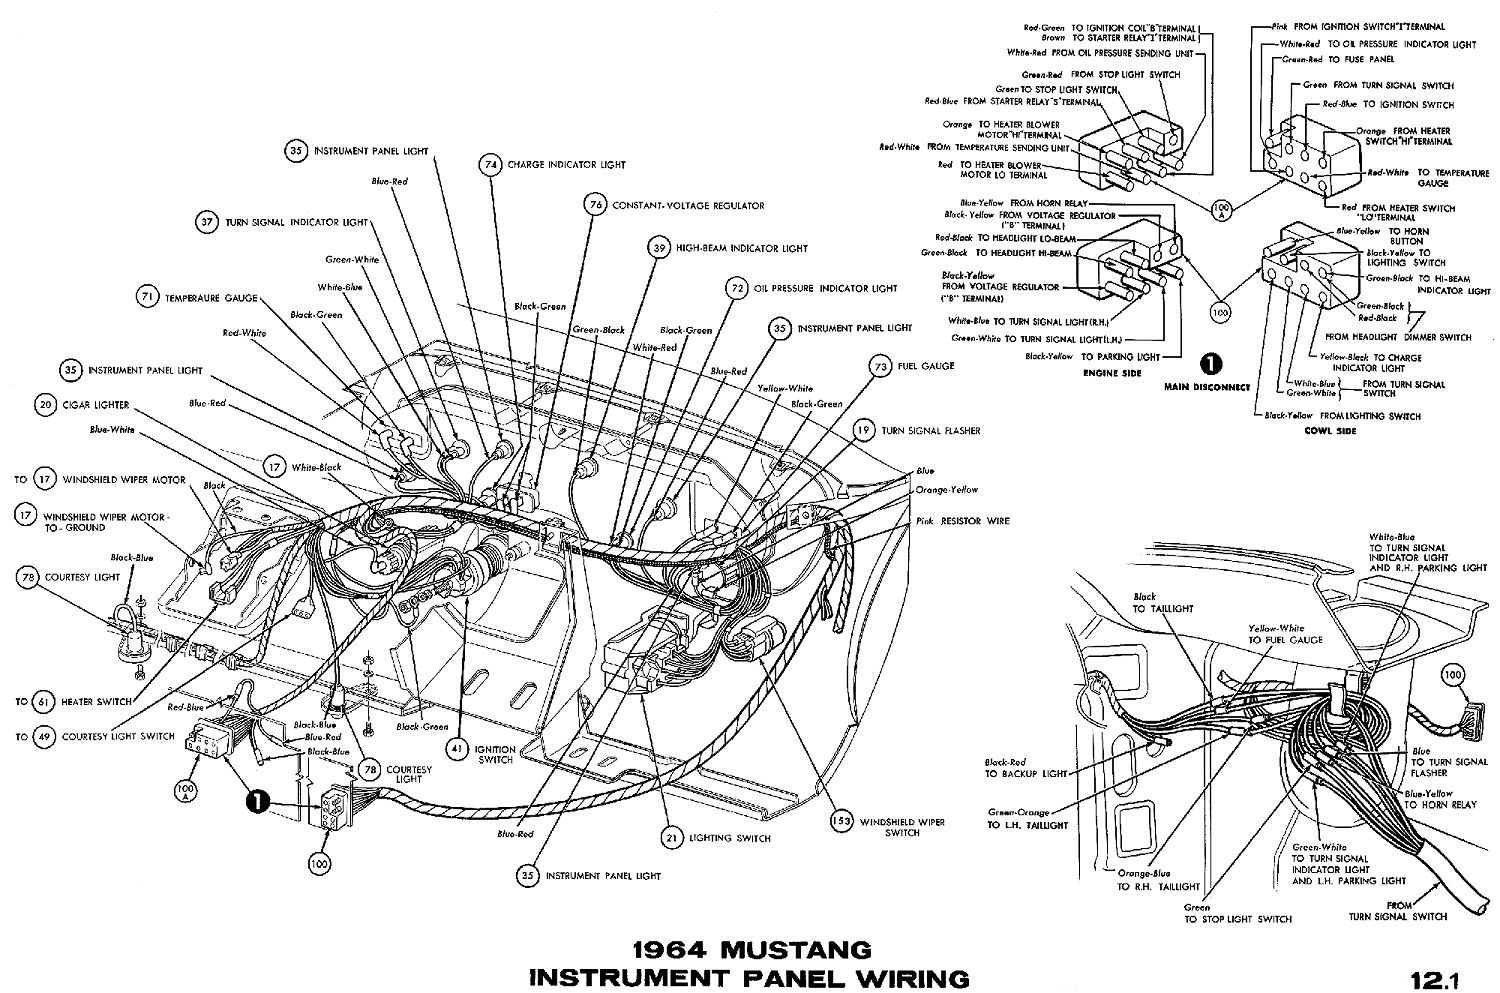 hight resolution of amp gauge wiring diagram 72 mustang wiring diagram centre 1964 mustang wiring diagrams average joe restoration